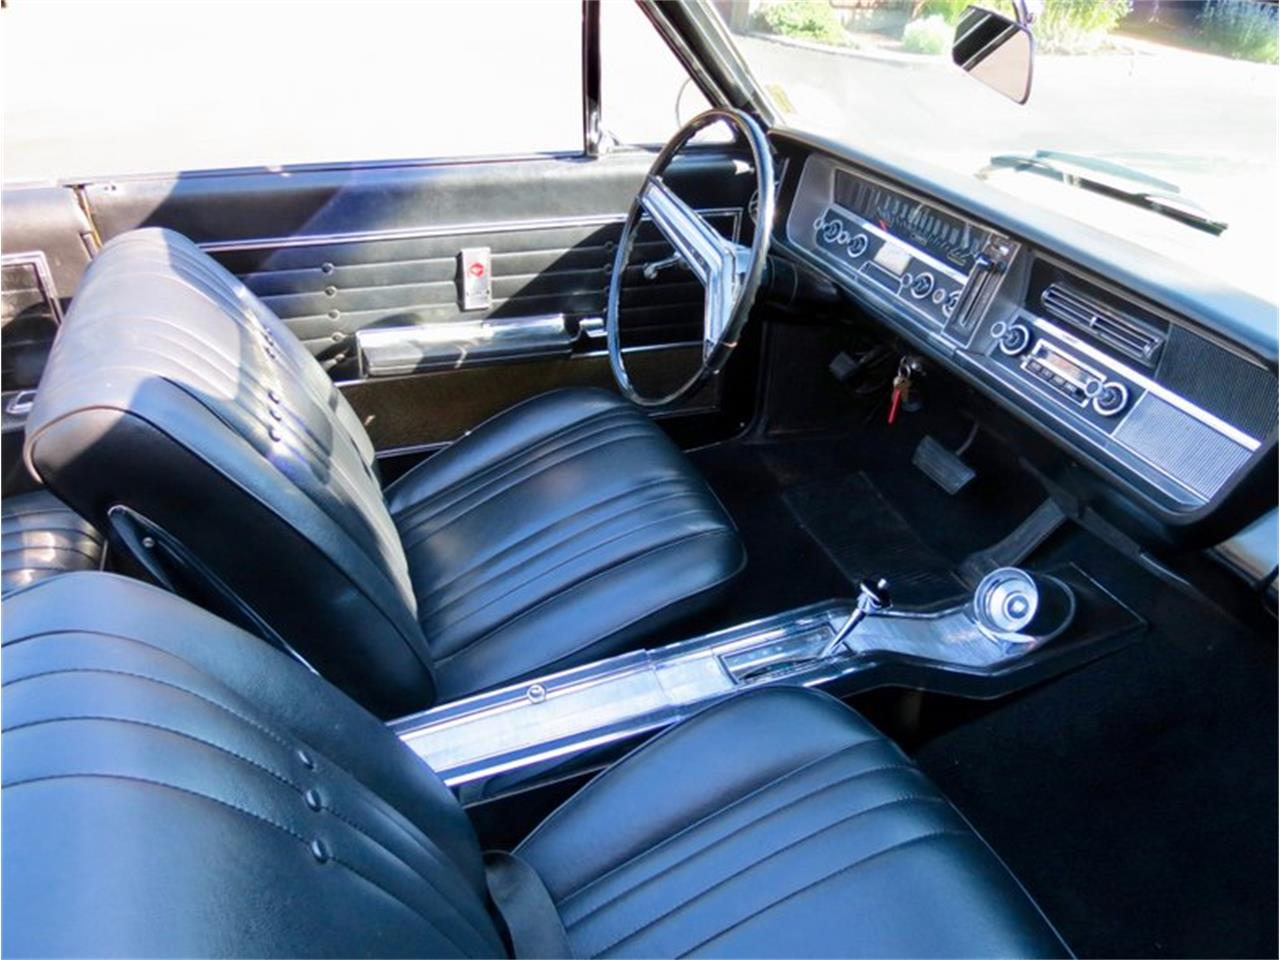 1965 Buick Skylark for sale in Dayton, OH – photo 12